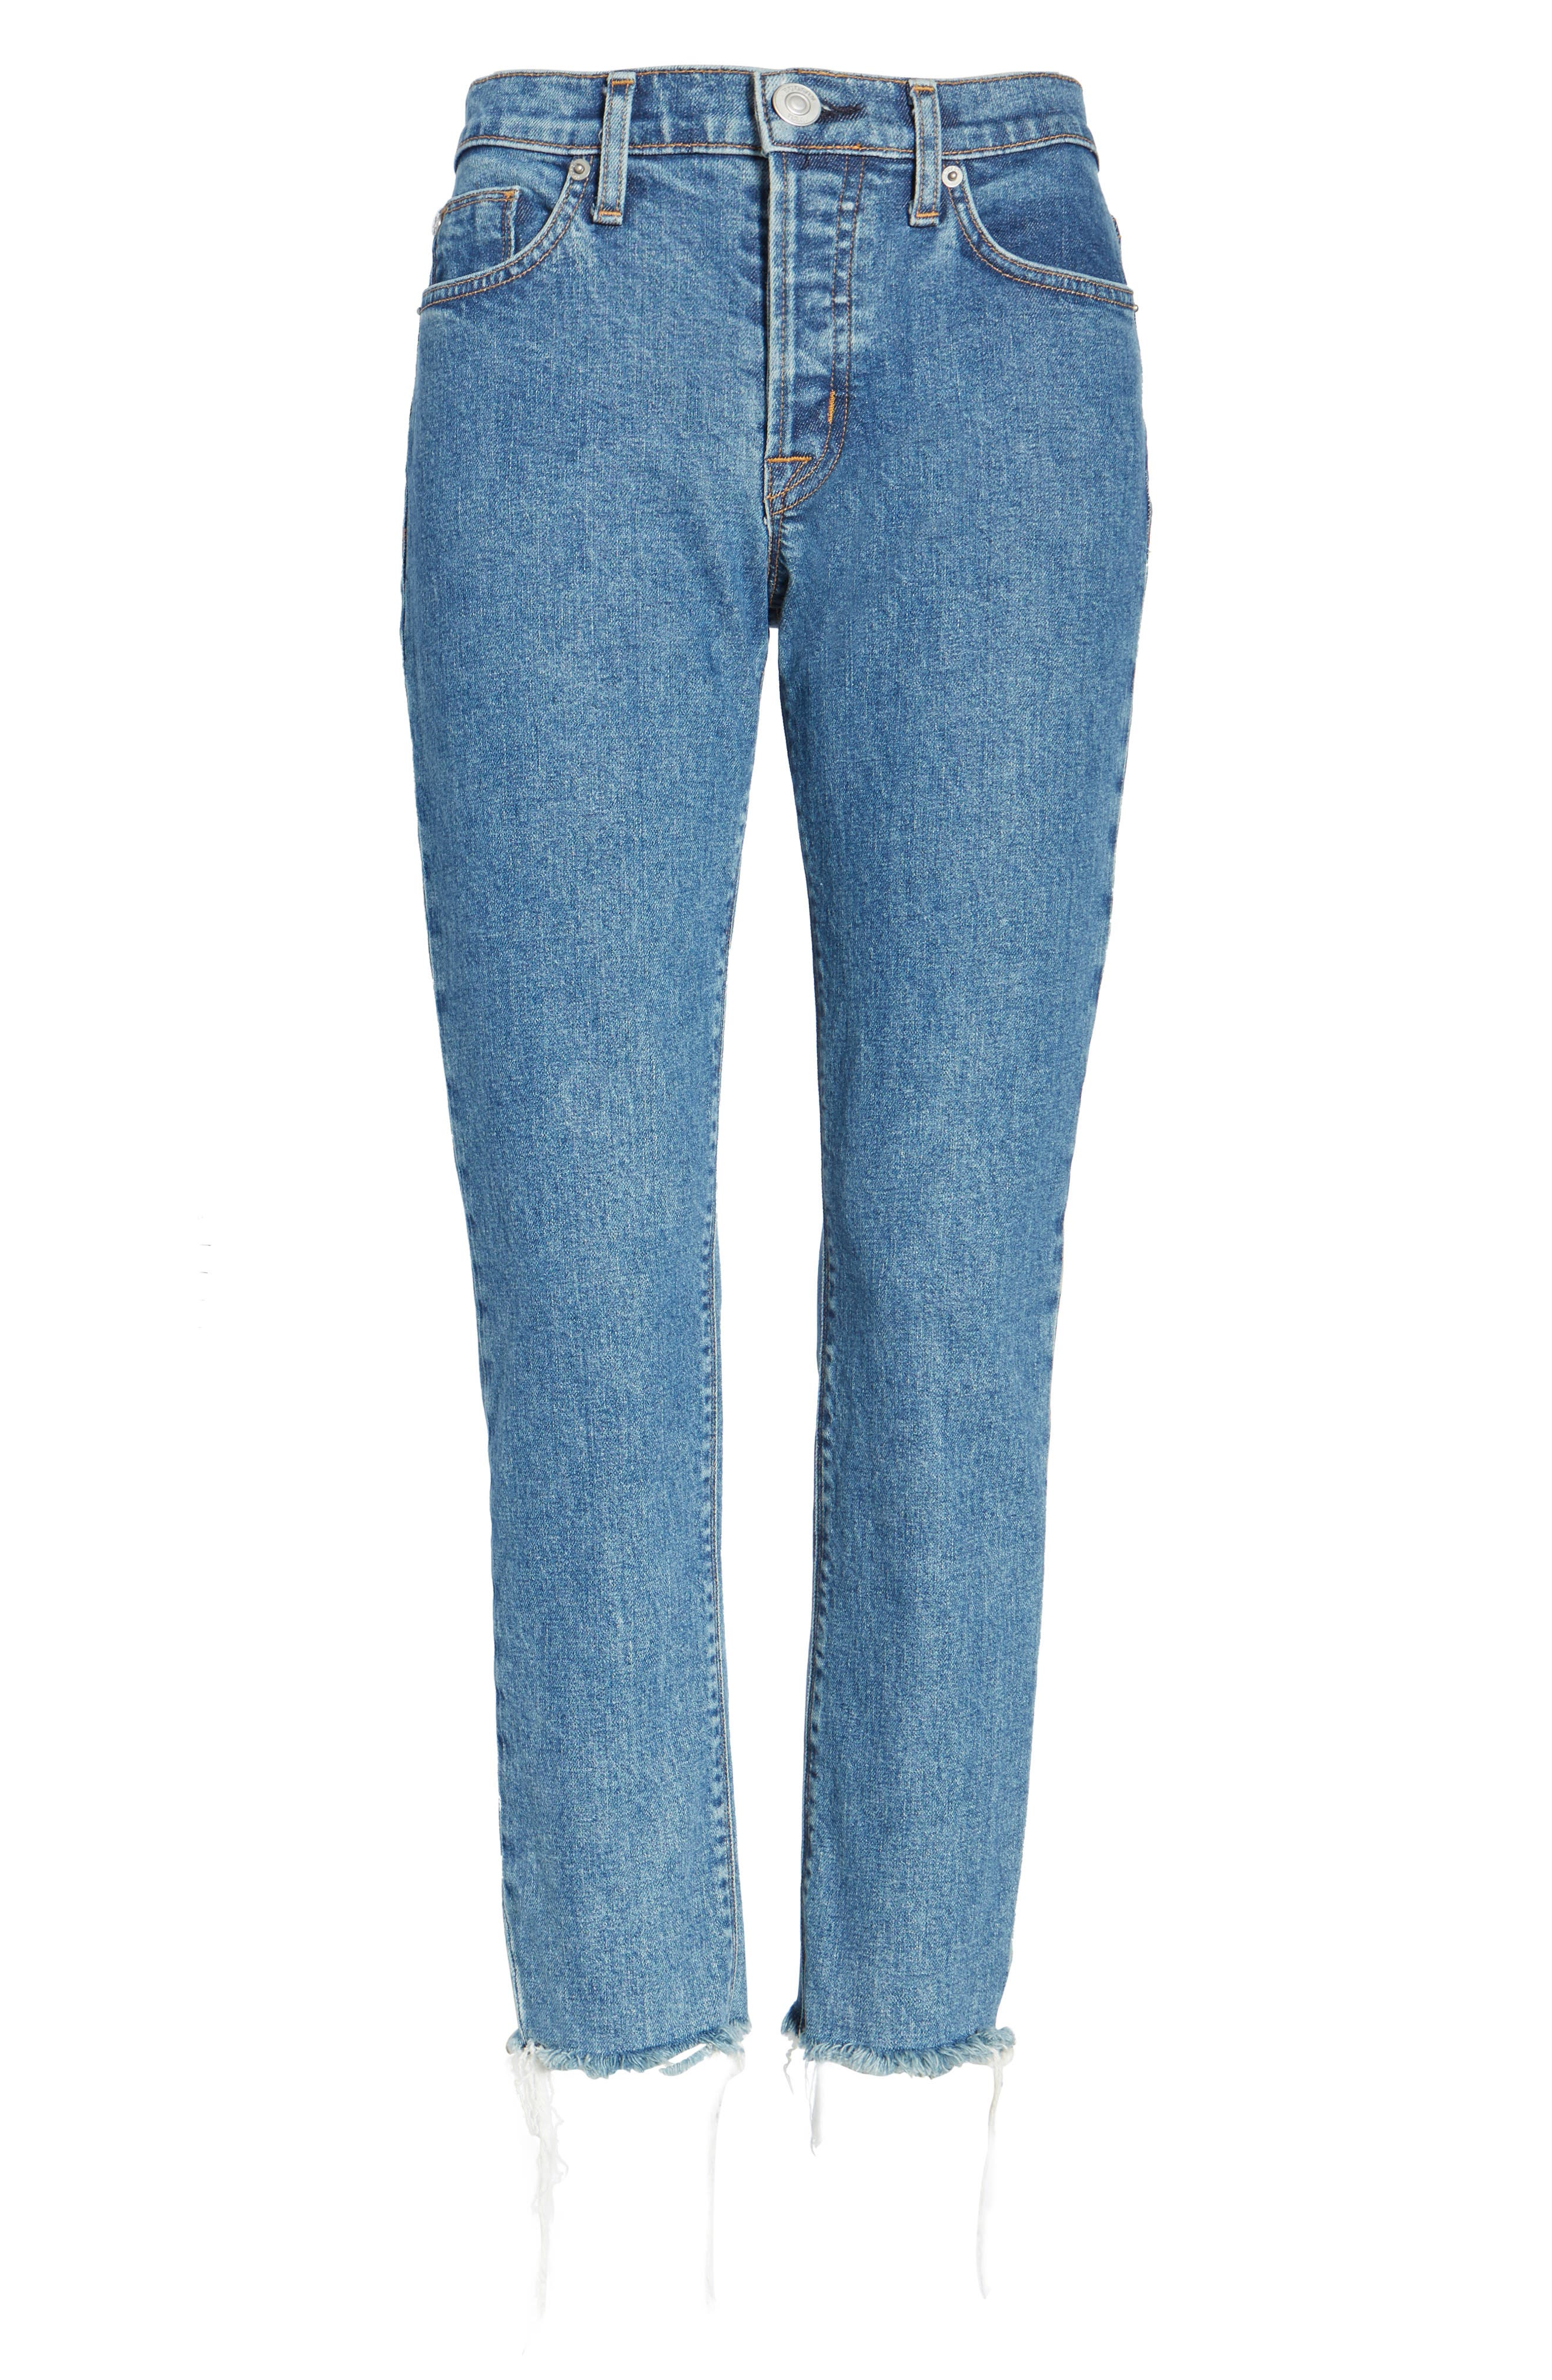 Riley Crop Relaxed Straight Leg Jeans,                             Alternate thumbnail 6, color,                             450